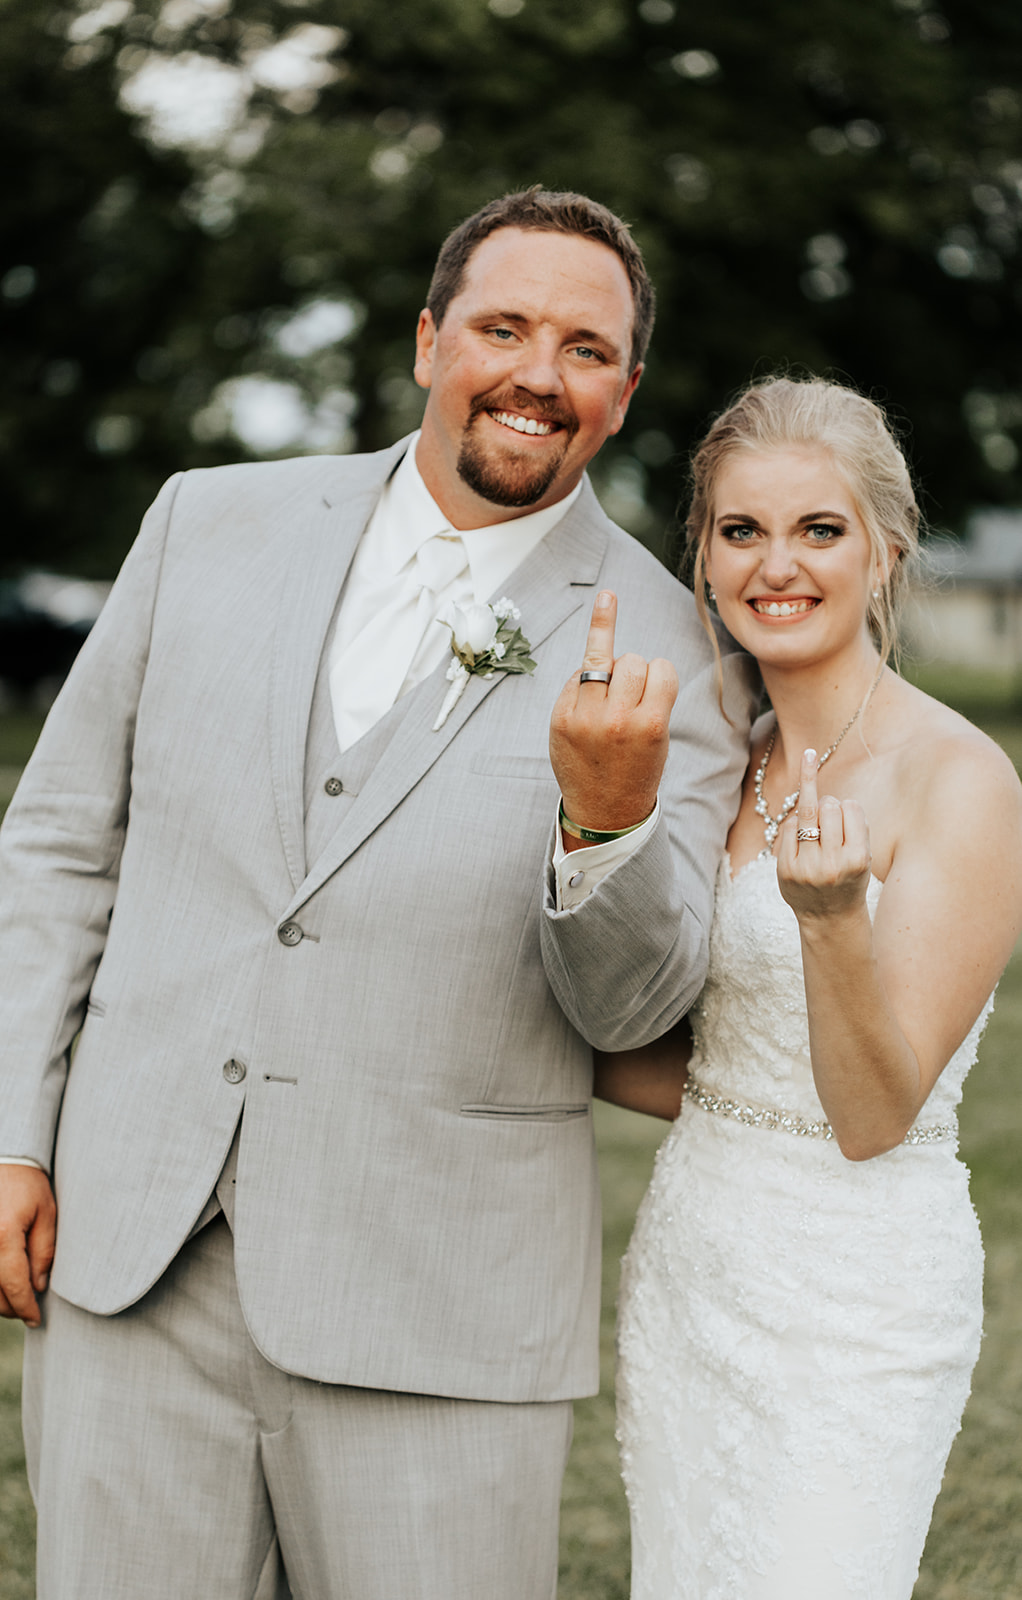 Sunny Wedding at Christian Conference Center in Newton Iowa flipping off the camera with wedding rings